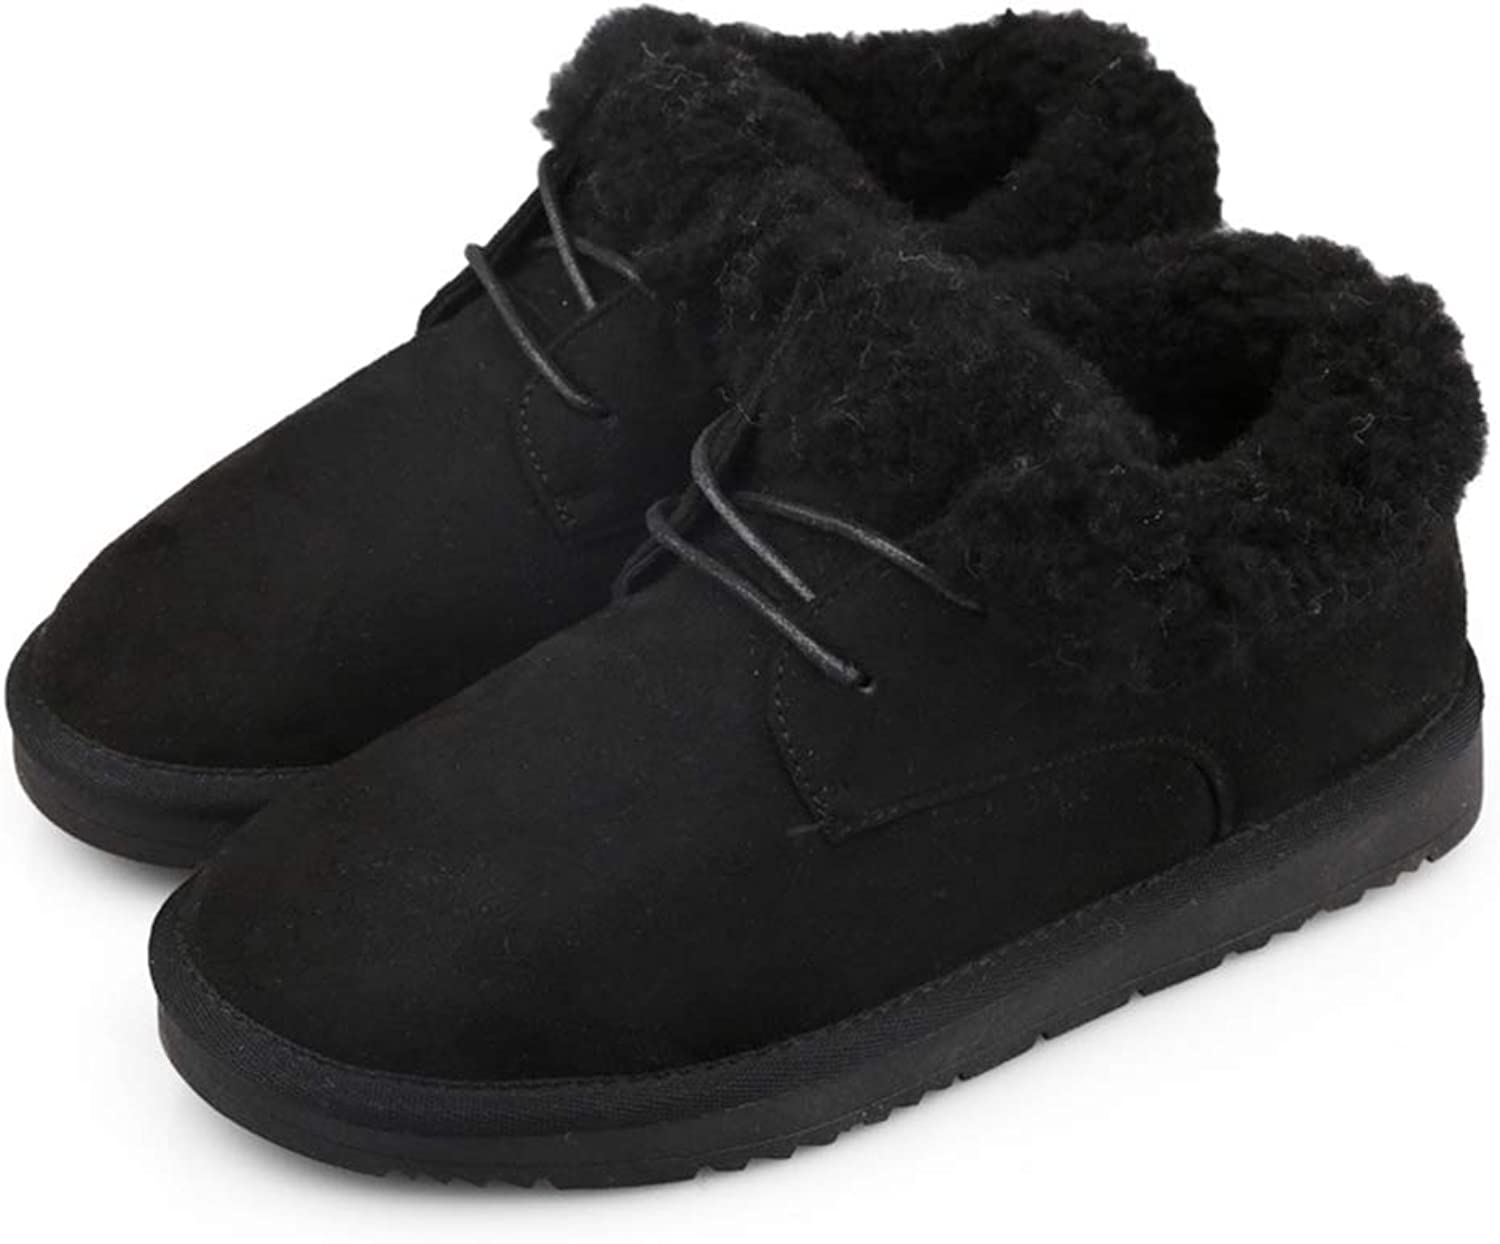 Kyle Walsh Pa Women Winter Boots Soft Warm Fur Lace-up Female Soft Comfortable Flats shoes